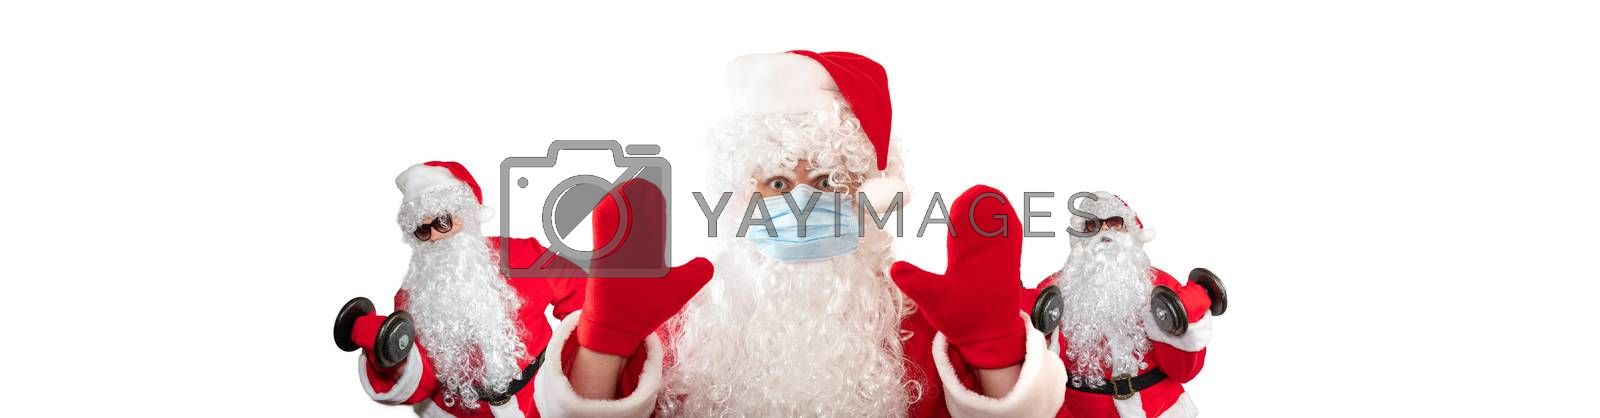 Santa Claus wearing a medical mask, having his both hands up, eyes wide open in warning gesture. Two Santa Clauses working out in the background behind him. Isolated on white background. Banner size, copy space.